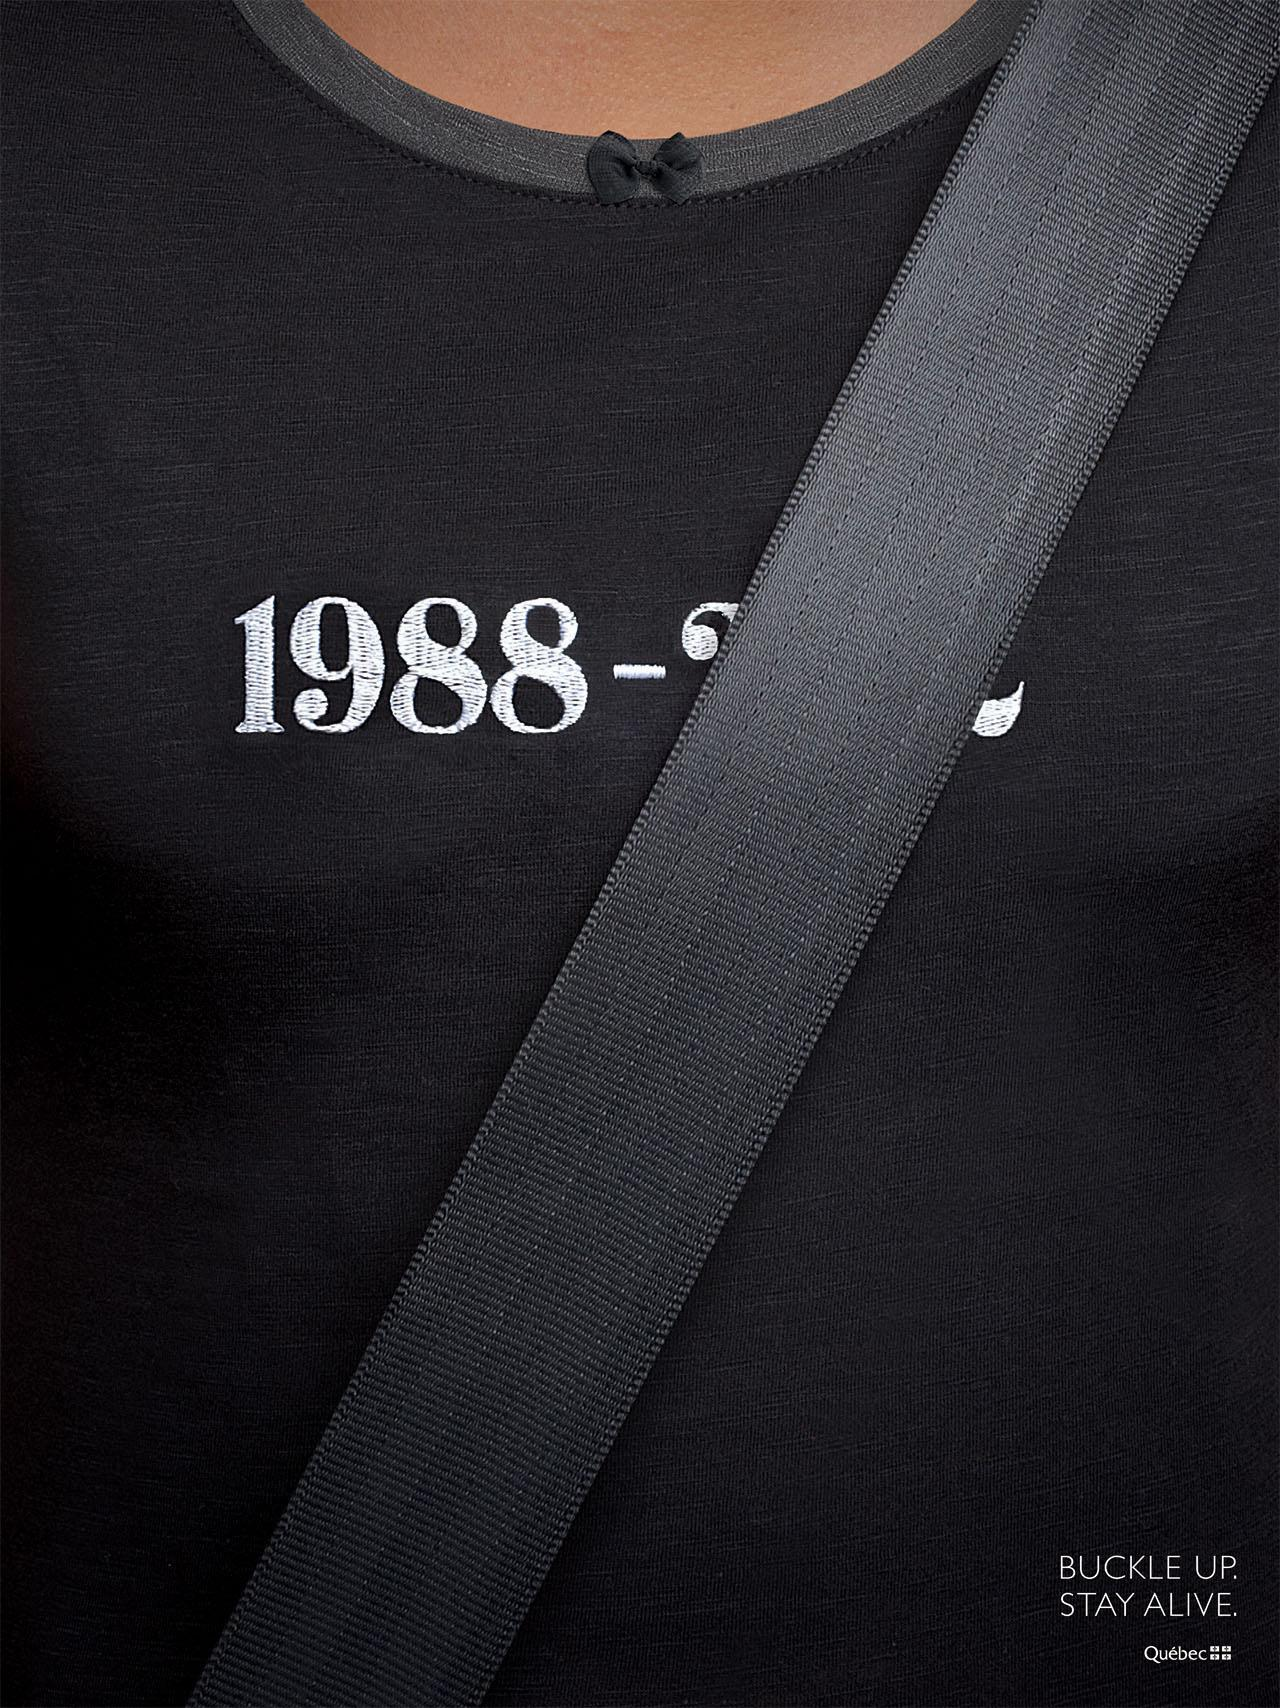 Quebec Automobile Insurance Society: Seatbelts, Black | Ads of the World™